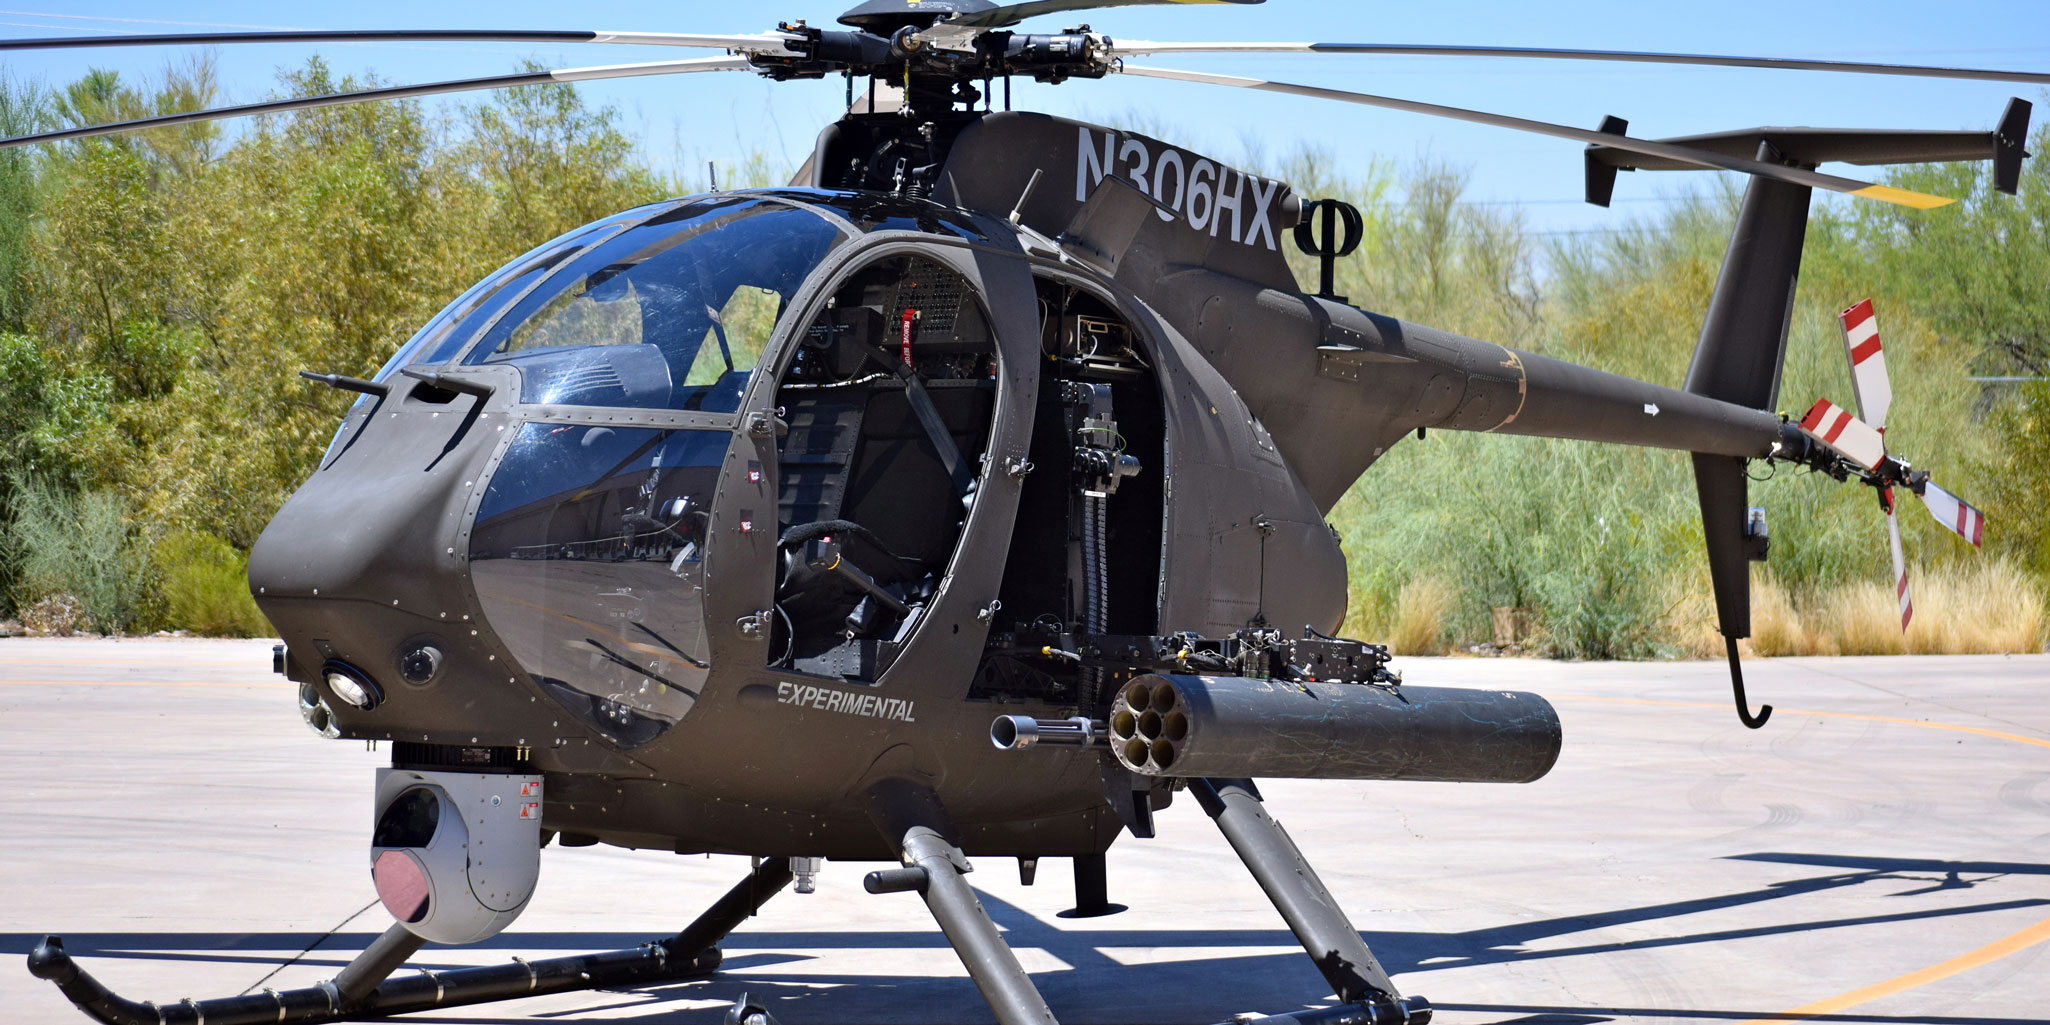 helicopter little bird with Boeing Starts Little Bird Deliveries Saudi Arabia on Spin Master Vehicule Avec Figurine Patpatrouille Paw Patrol Hovercraft Et Zuma 129425 as well Stealth Black Hawk furthermore Mh6 little bird images furthermore Helicopter Game as well Tank The Flying Turt Err Tortoise 286048392.